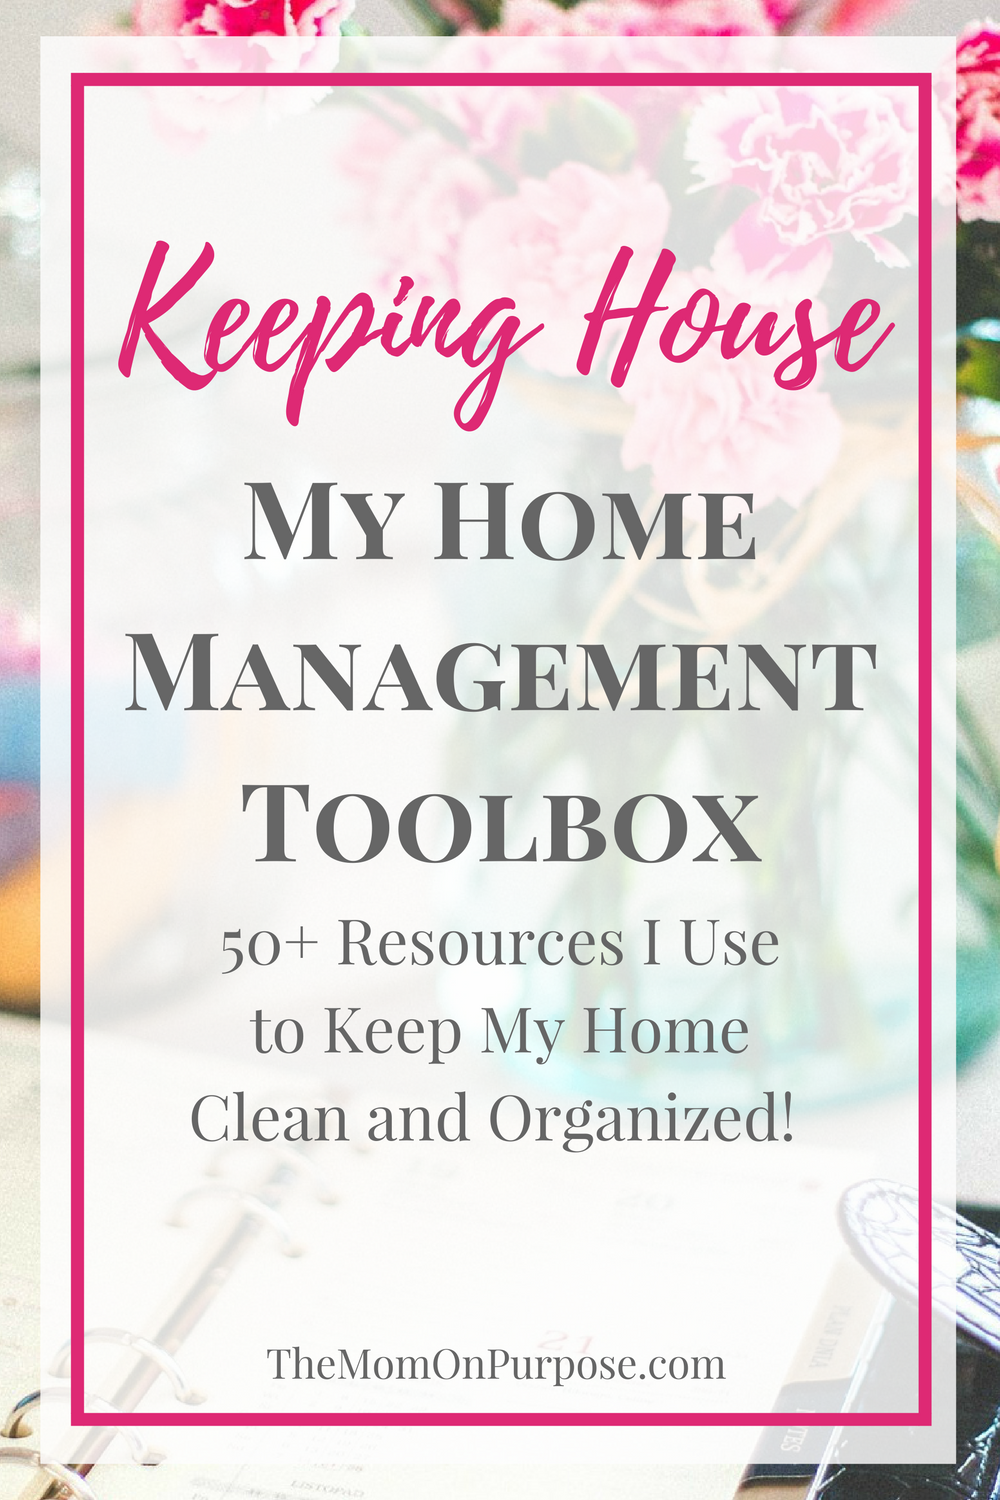 Need help staying on top of your home management? These tools and resources might be just what you need to help yo use a better manager of your home!